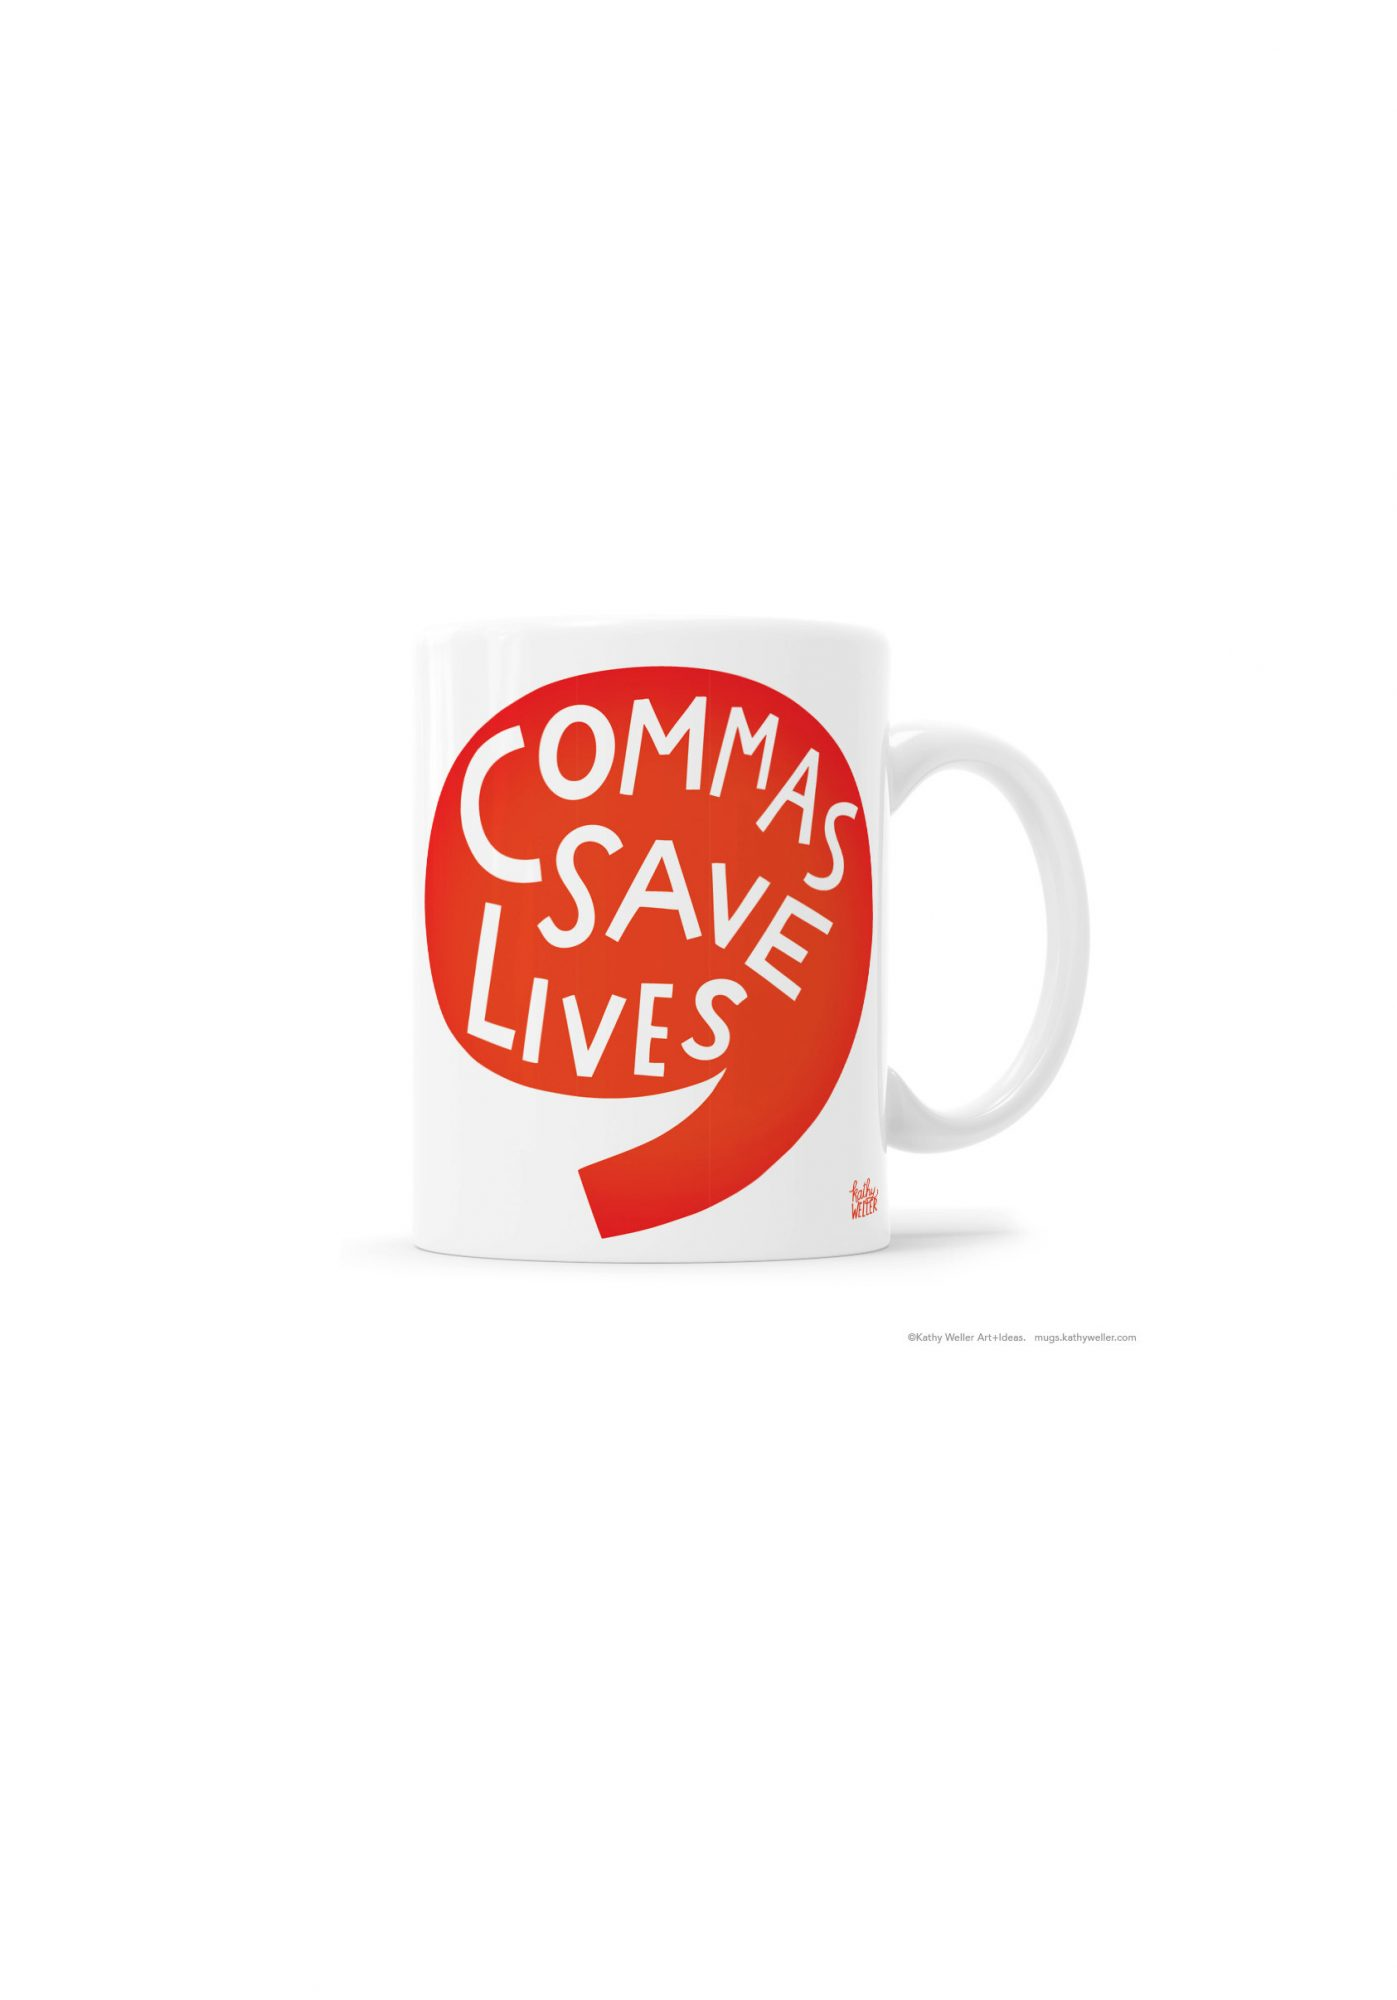 Commas Save Lives Mug